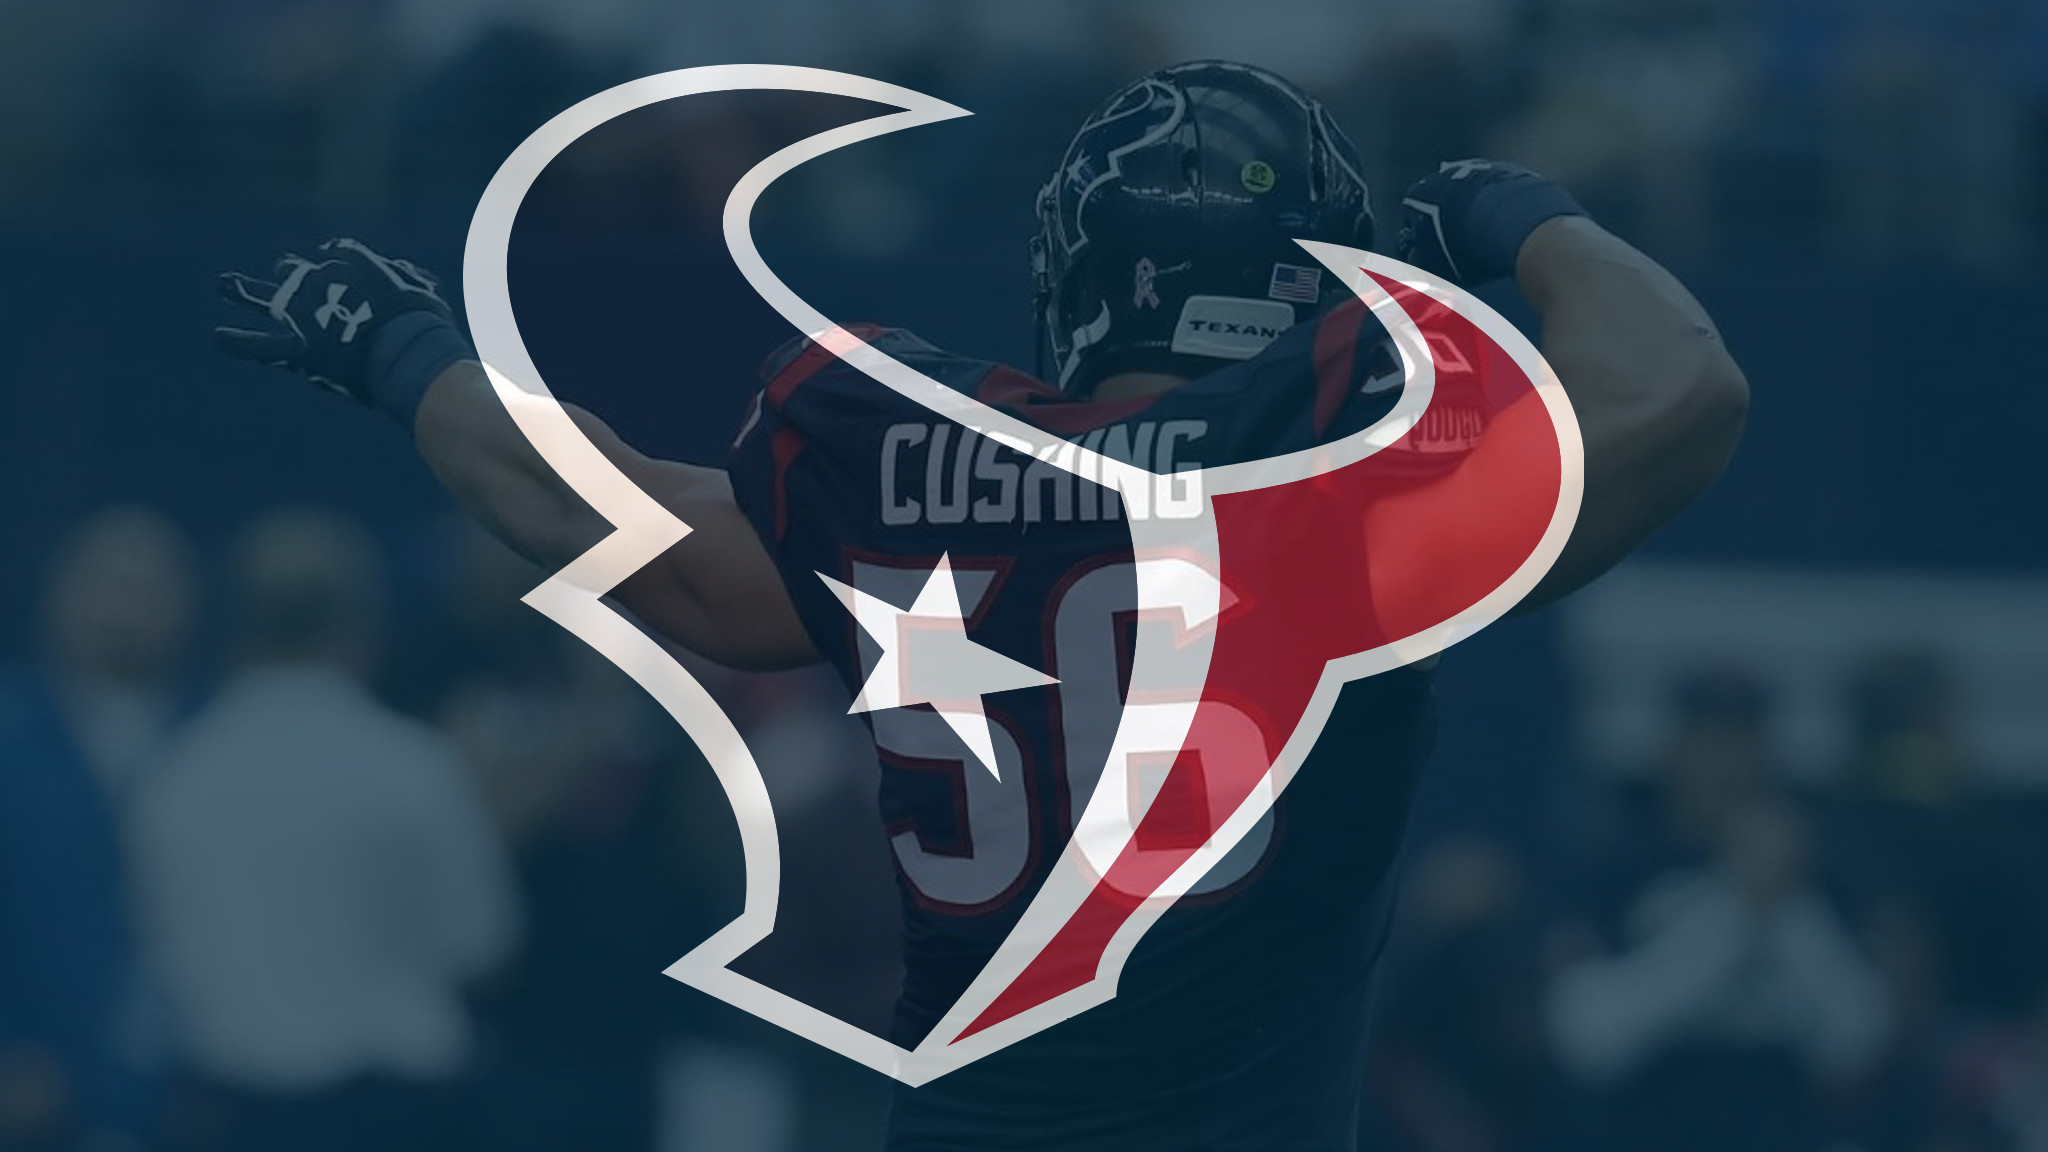 Houston Texans Wallpaper 2018 (73+ Images